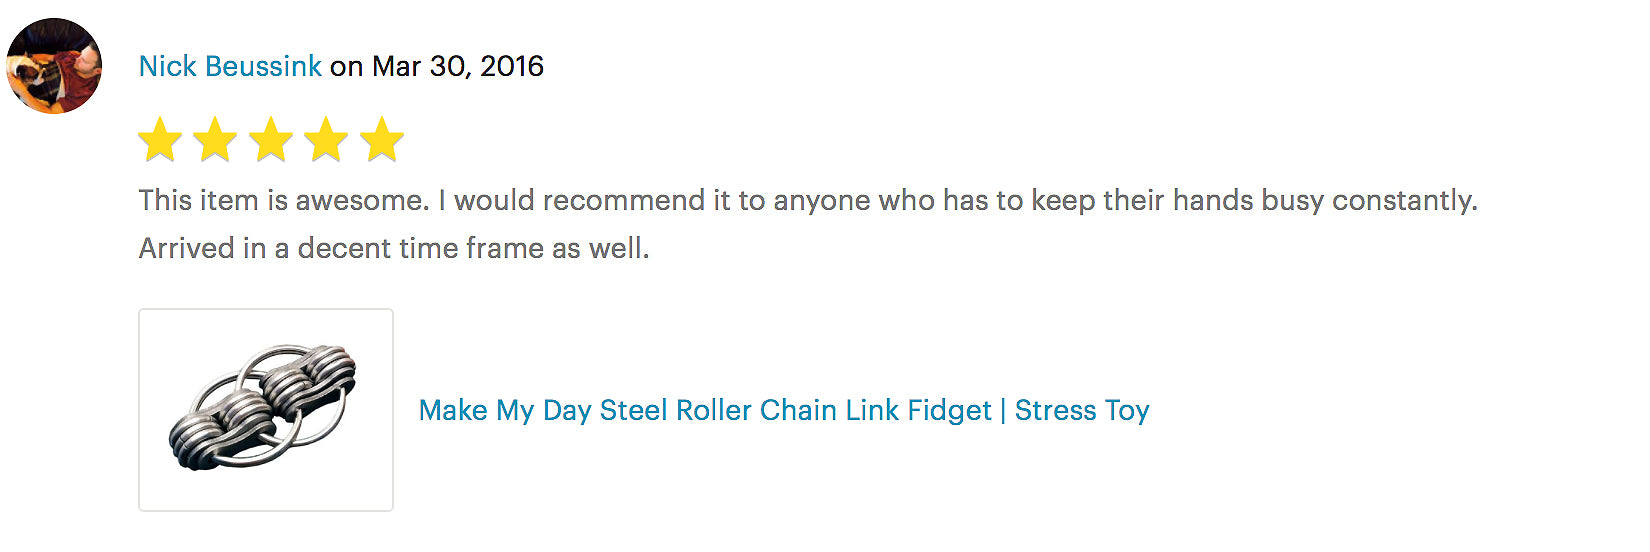 MAKE MY DAY STEEL ROLLER CHAIN LINK FIDGET | STRESS TOY product review